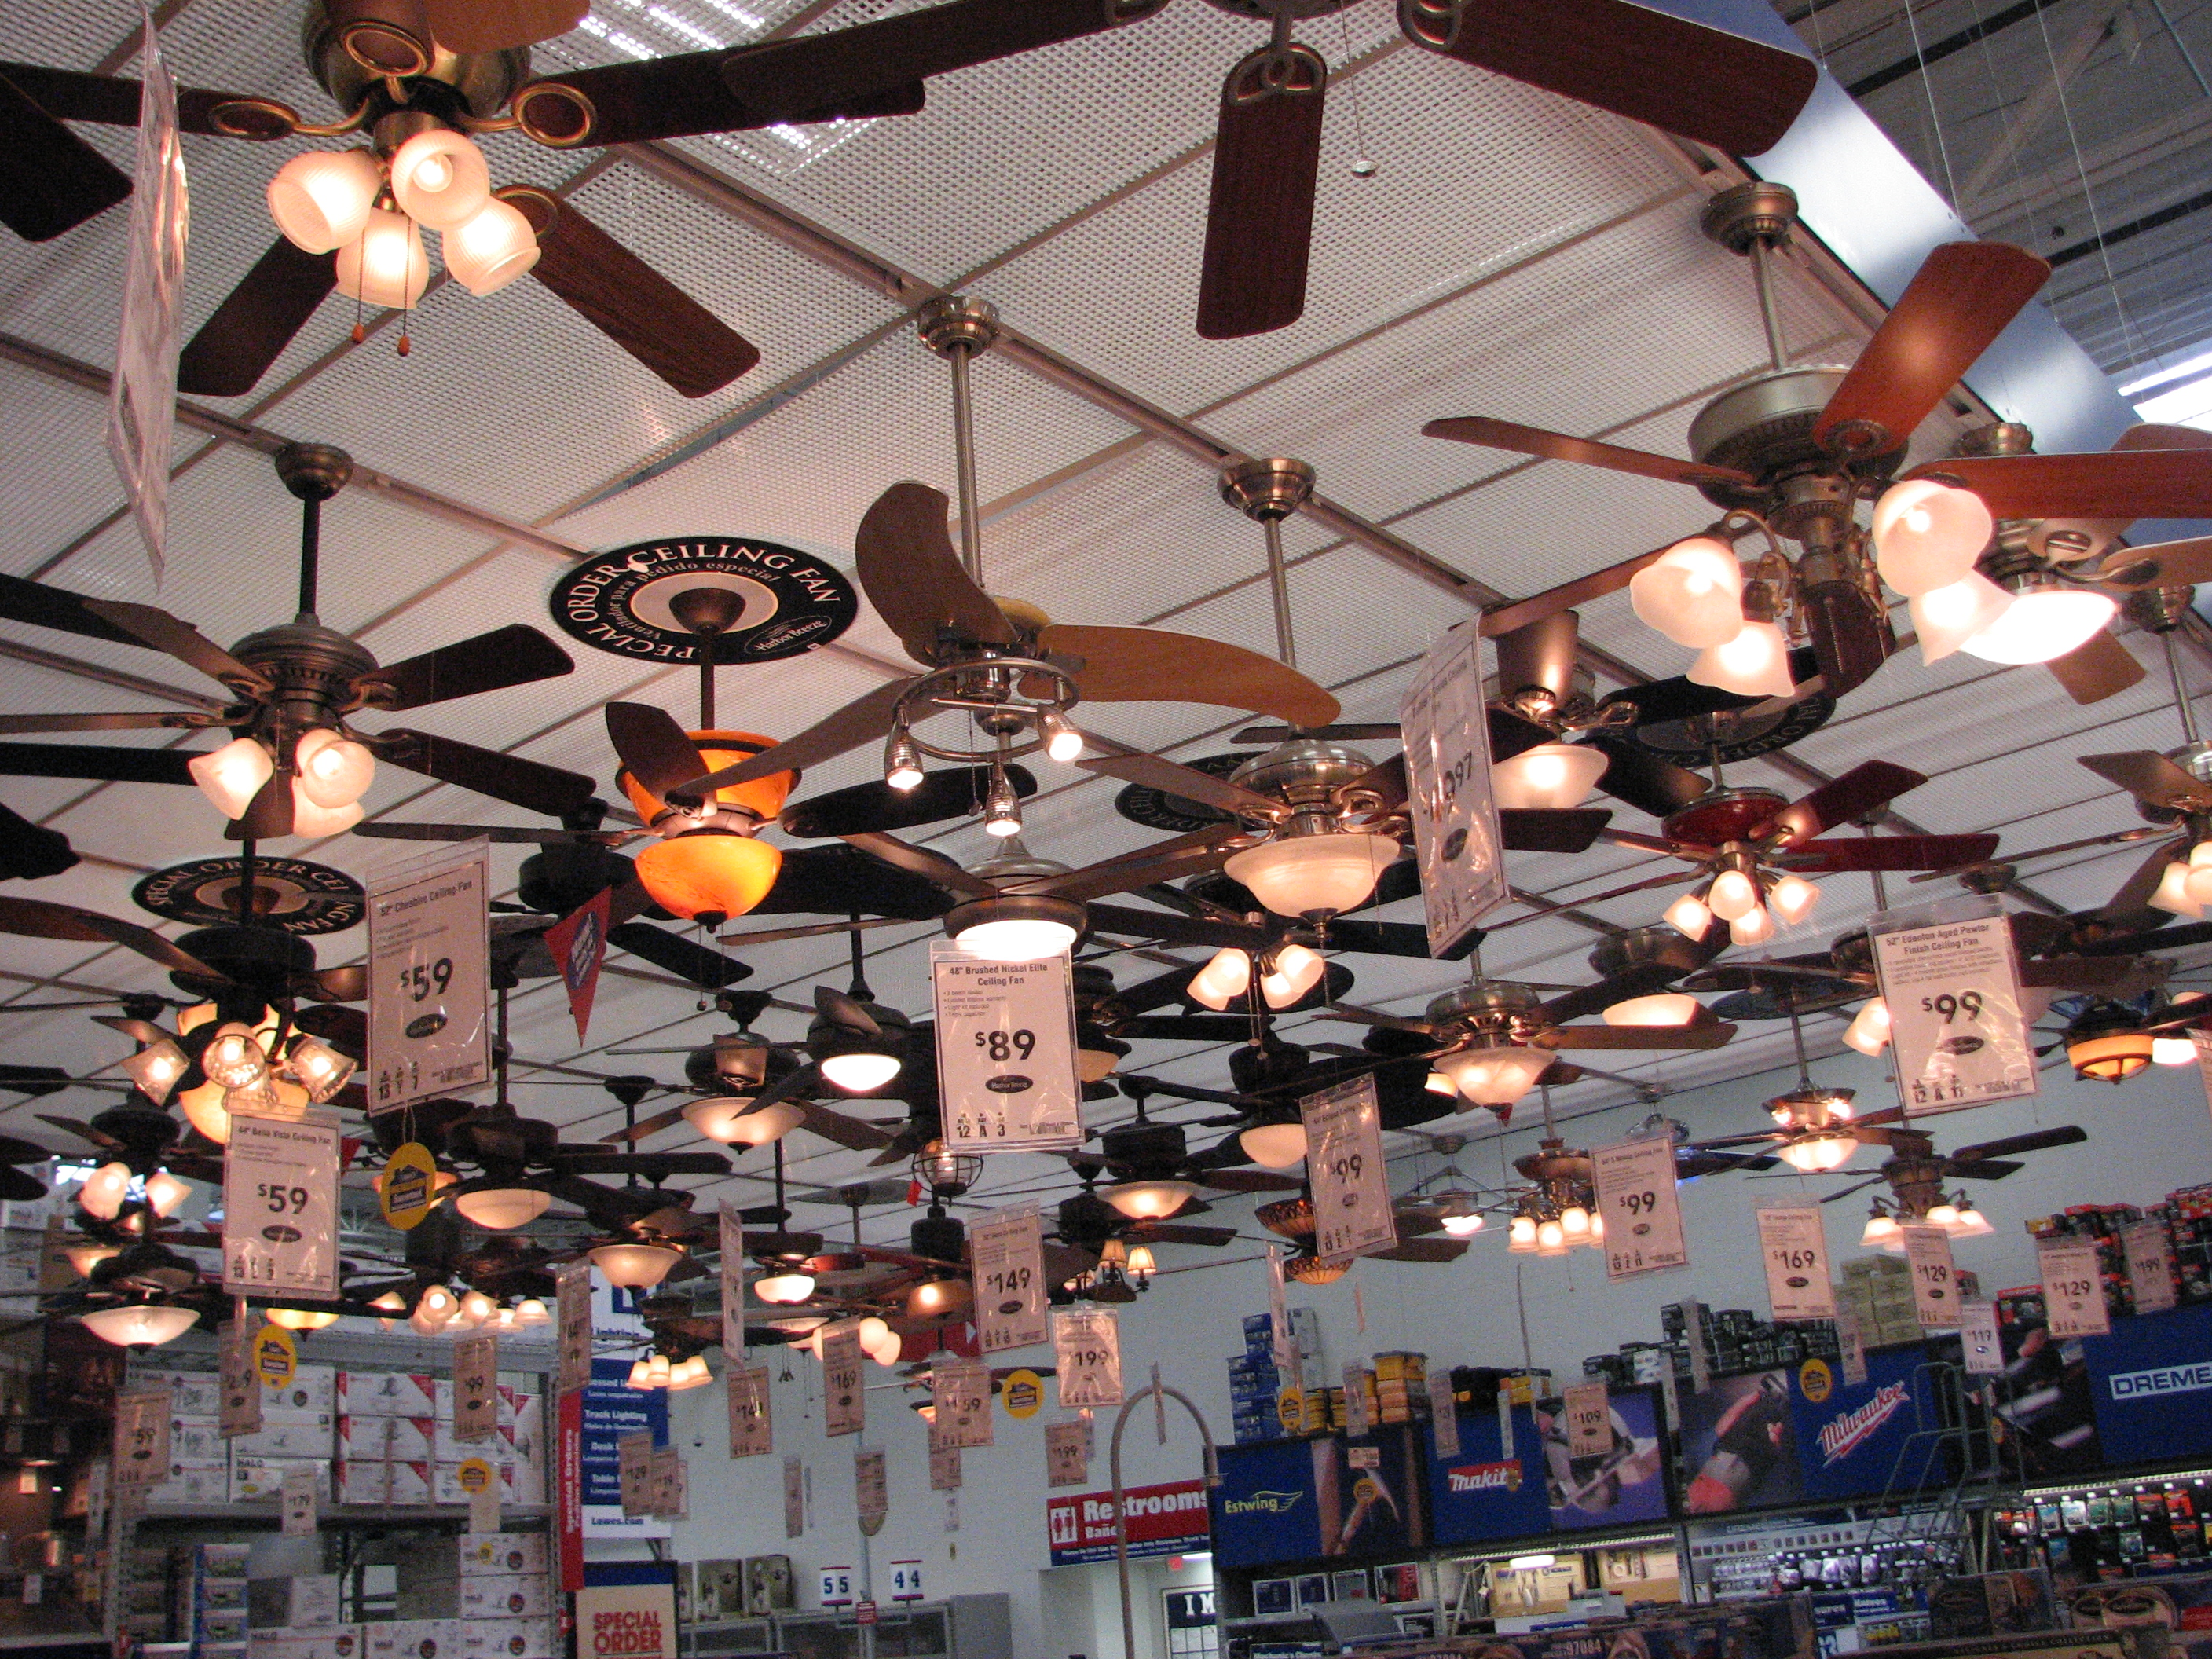 Ceiling fans lowes finest ceiling fans lowes with ceiling fans awesome highres image fans on the ceiling at loweus with ceiling fans lowes aloadofball Gallery